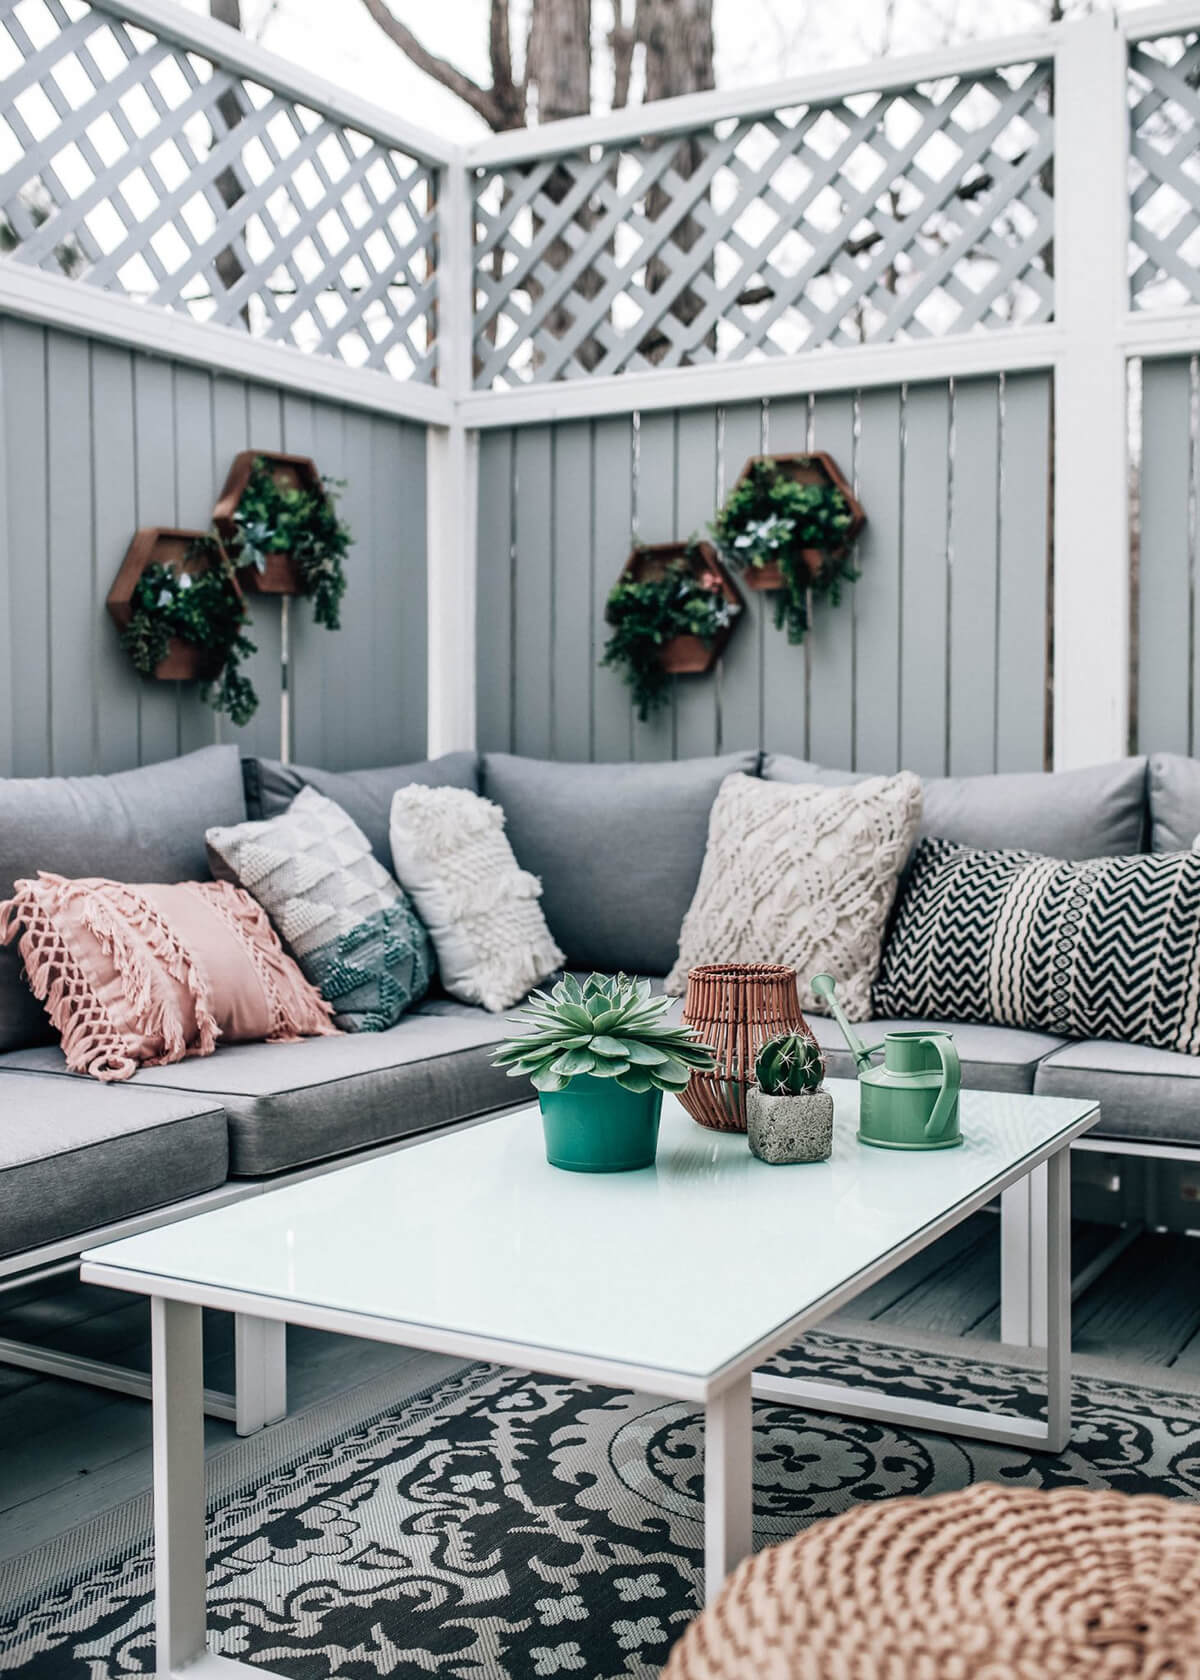 Inviting Back Porch Sitting Area is Soothing